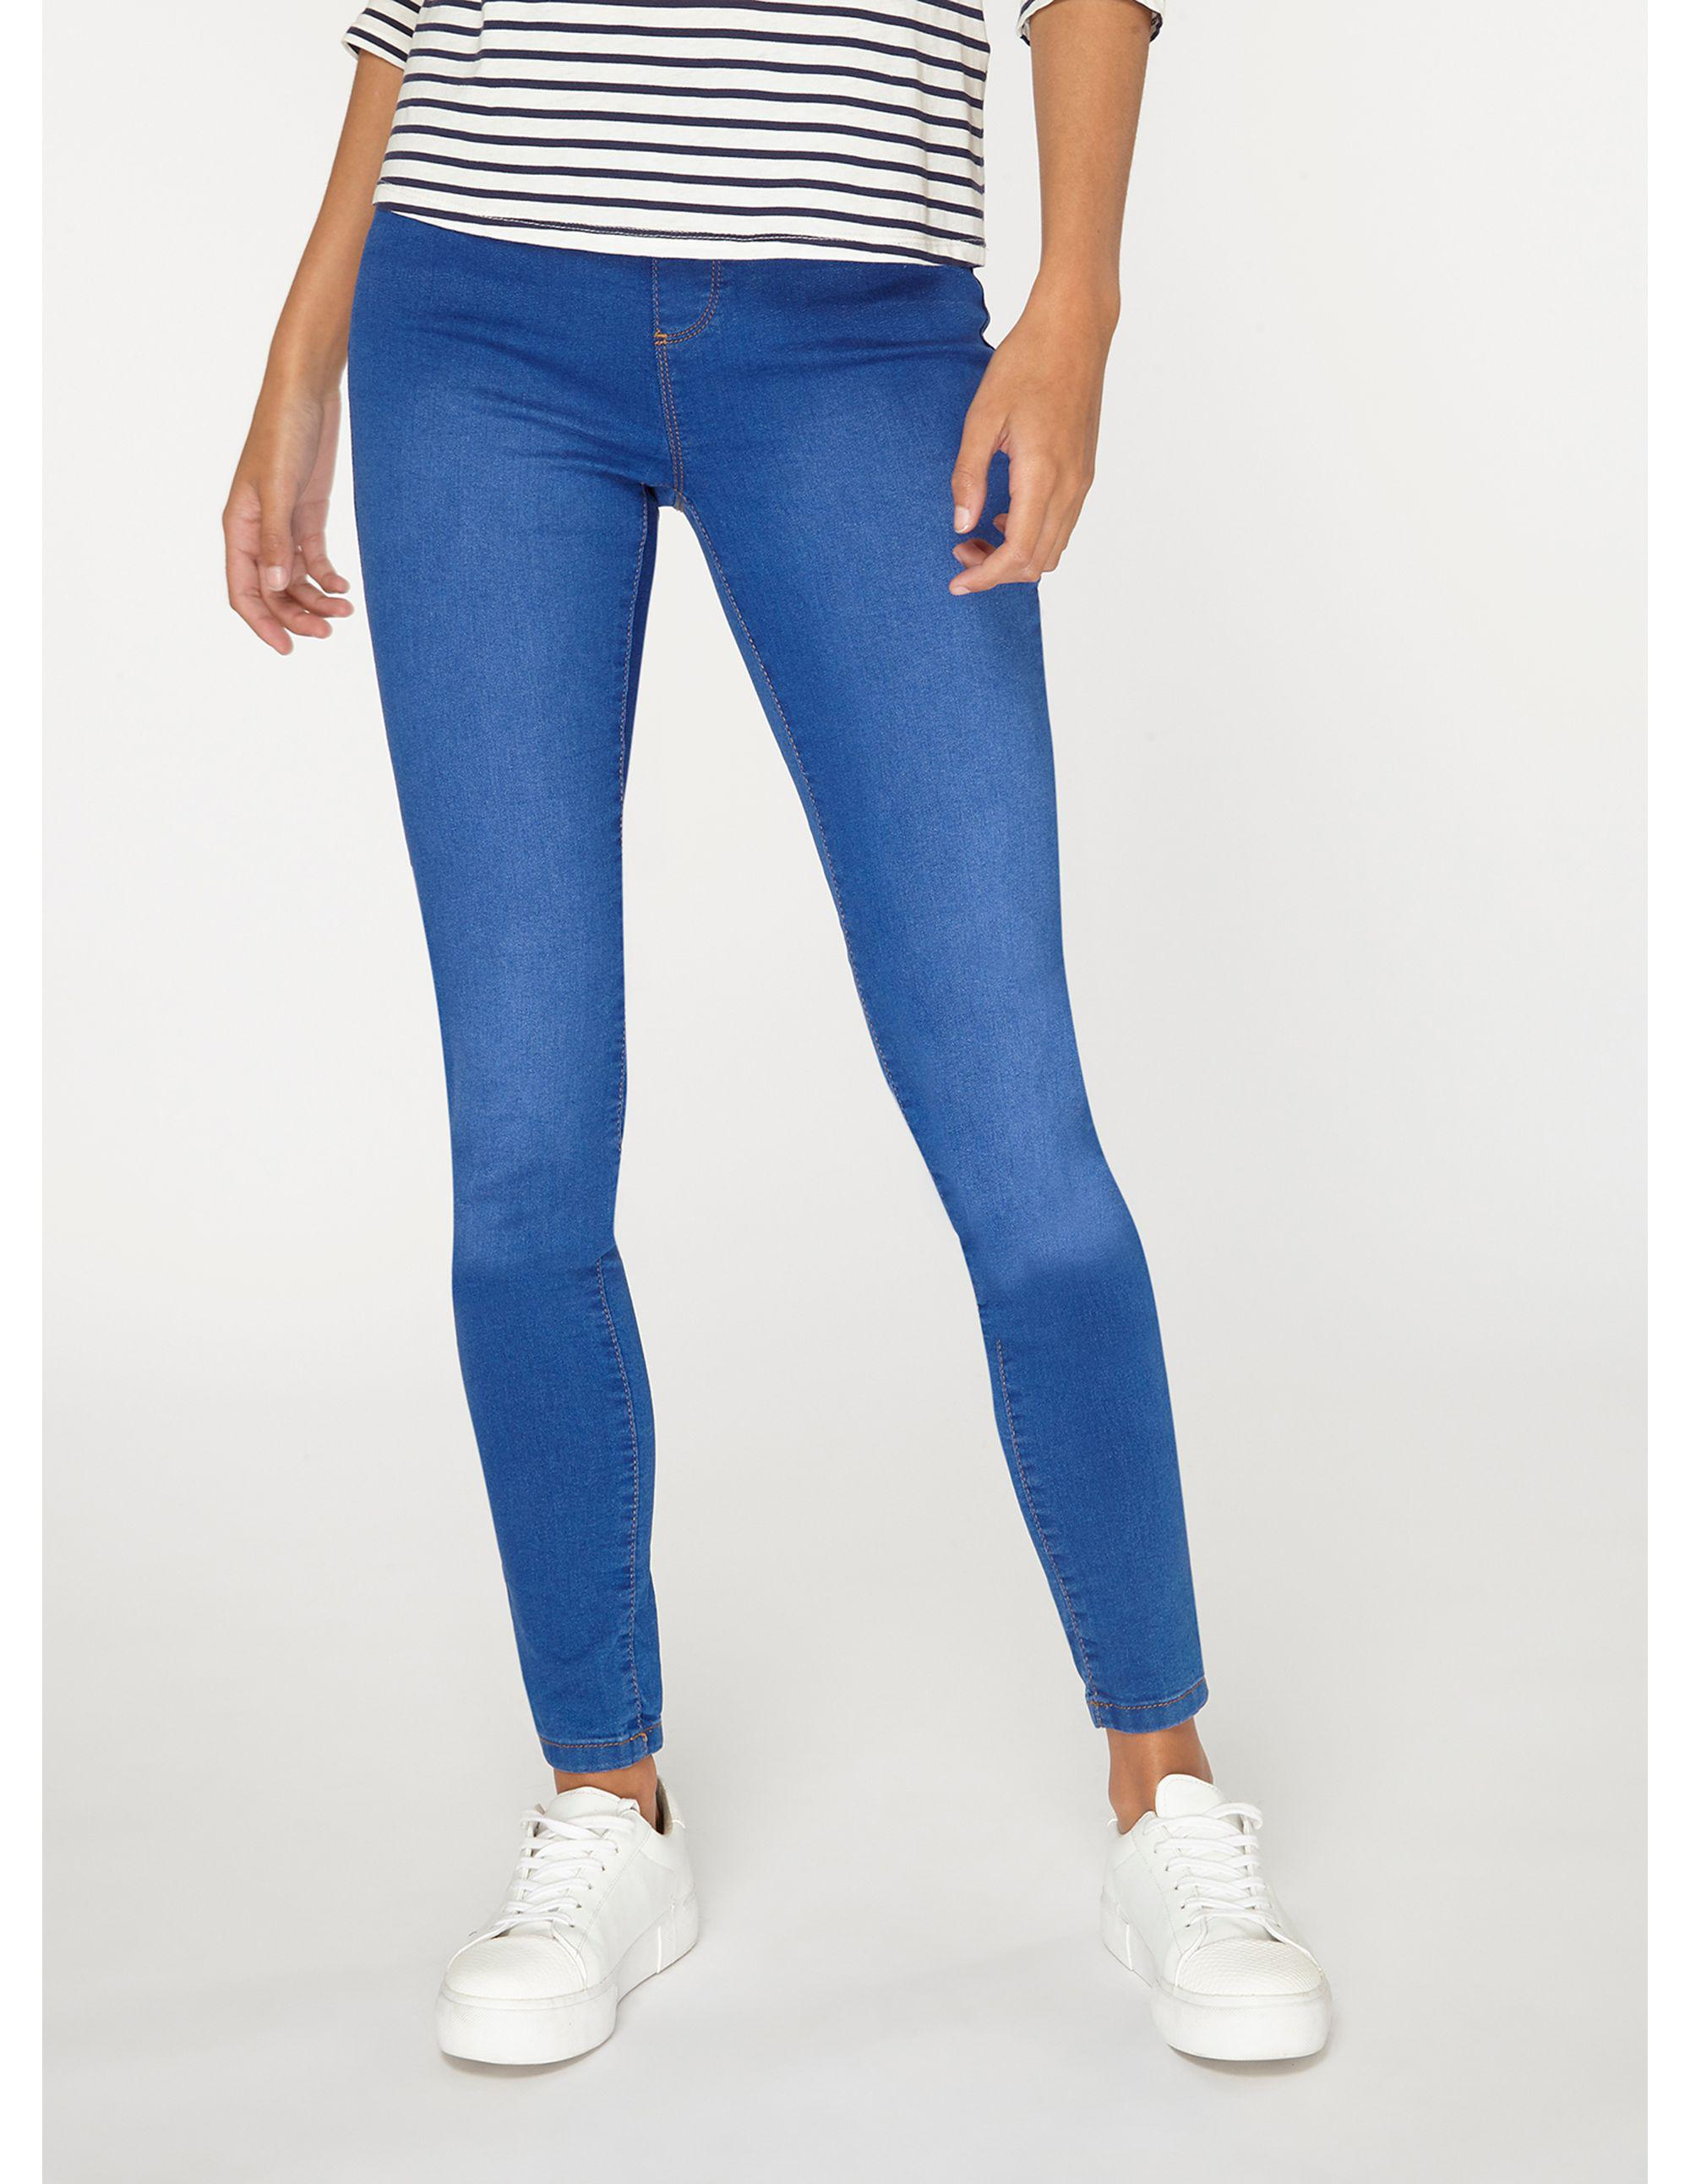 2170108d9097d Dorothy Perkins Tall Bright Blue Eden Jeggings in Blue - Lyst